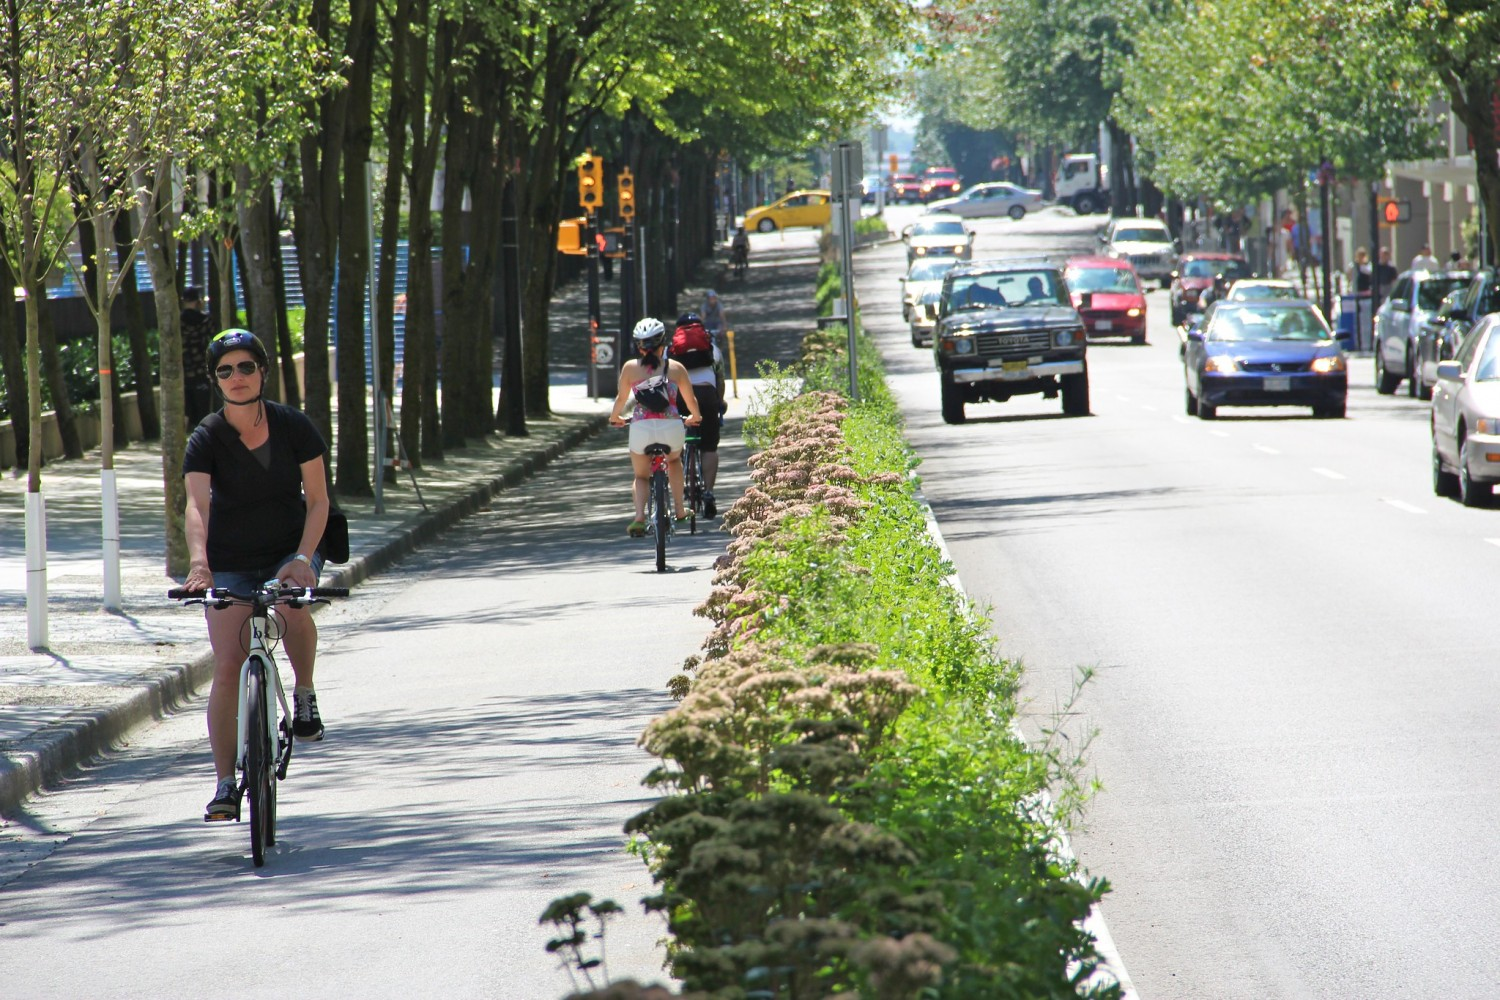 Mississauga investing in cycling as part of its COVID-19 recovery, despite dire financial projections